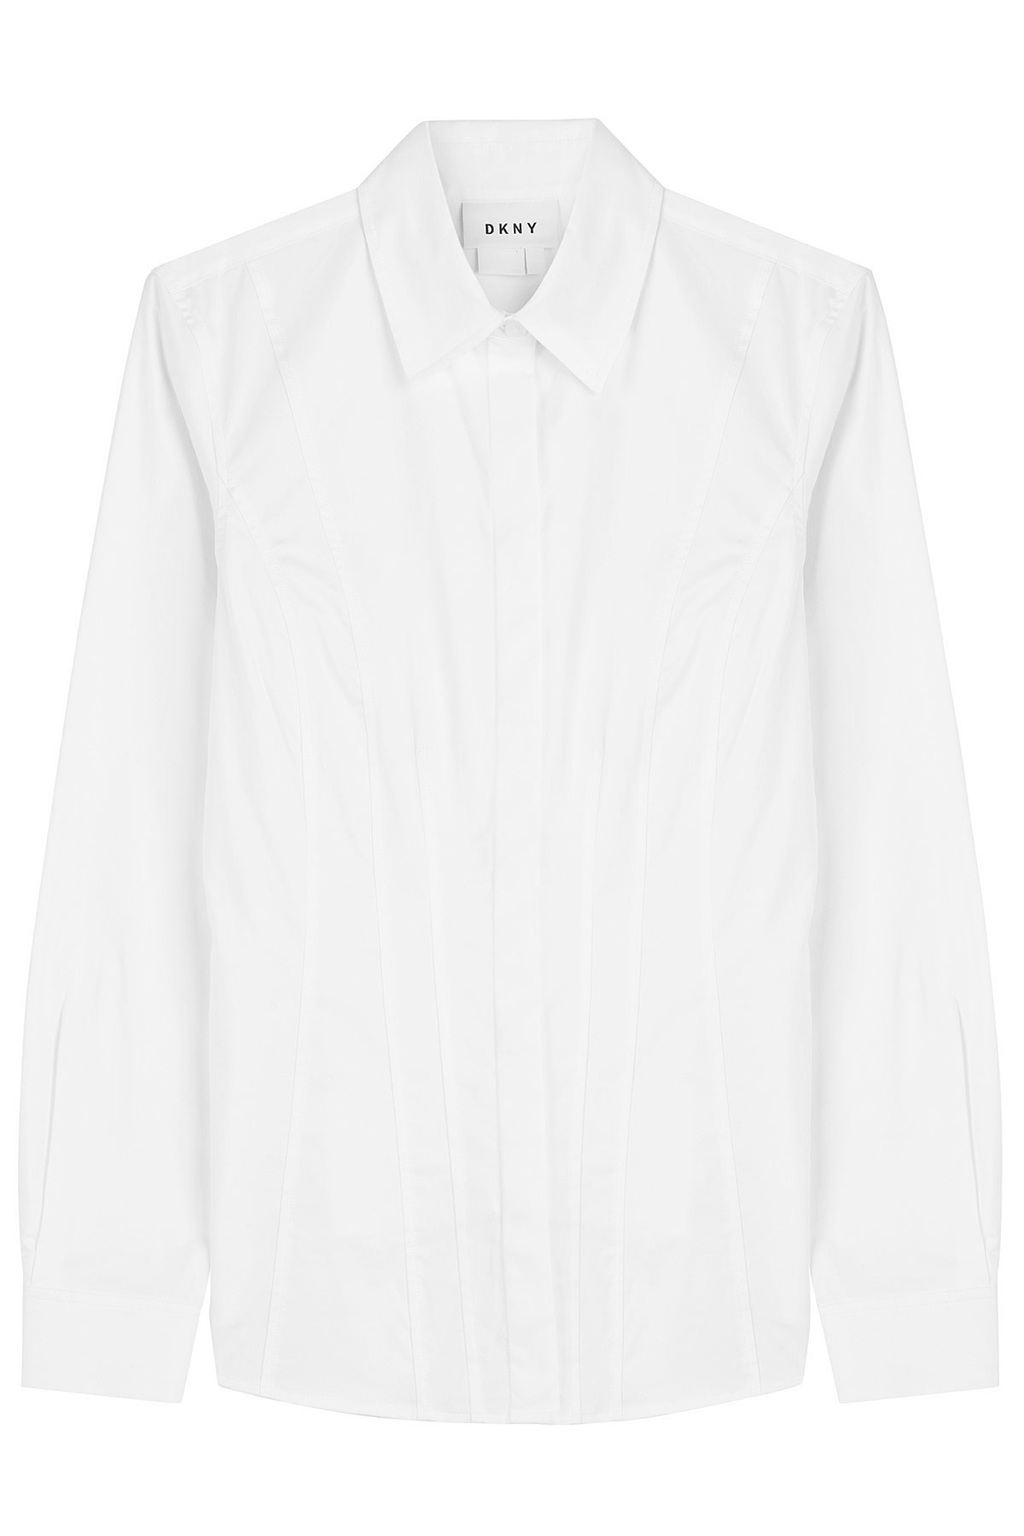 Cotton Shirt - neckline: shirt collar/peter pan/zip with opening; pattern: plain; predominant colour: white; occasions: work; length: standard; style: top; fibres: cotton - 100%; fit: body skimming; sleeve length: long sleeve; sleeve style: standard; texture group: cotton feel fabrics; pattern type: fabric; wardrobe: basic; season: a/w 2016